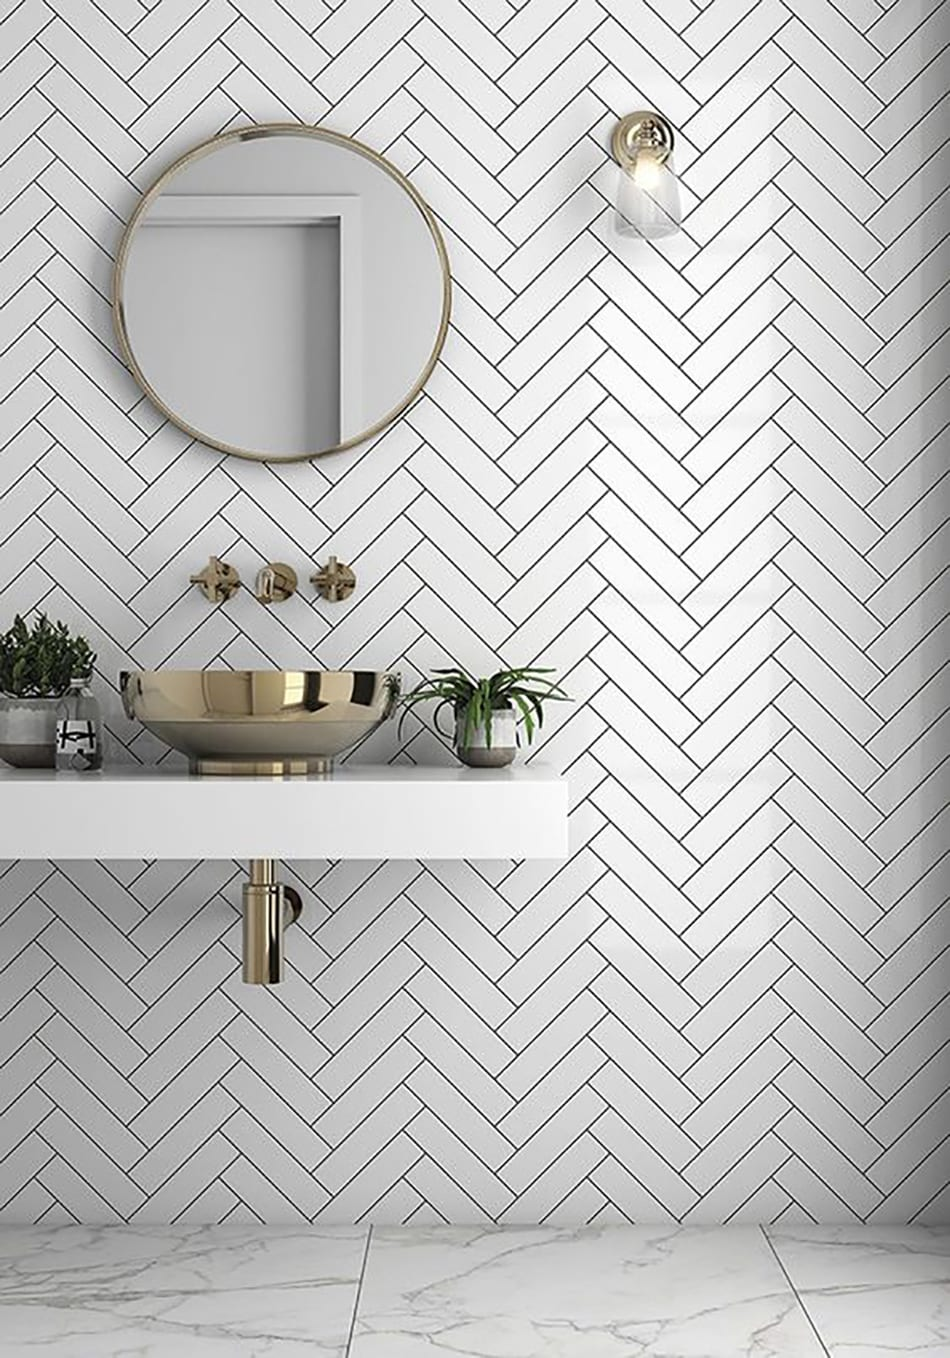 The Tile House Inspired Bathroom Ideas With Chevron Tiles Sa Decor Design